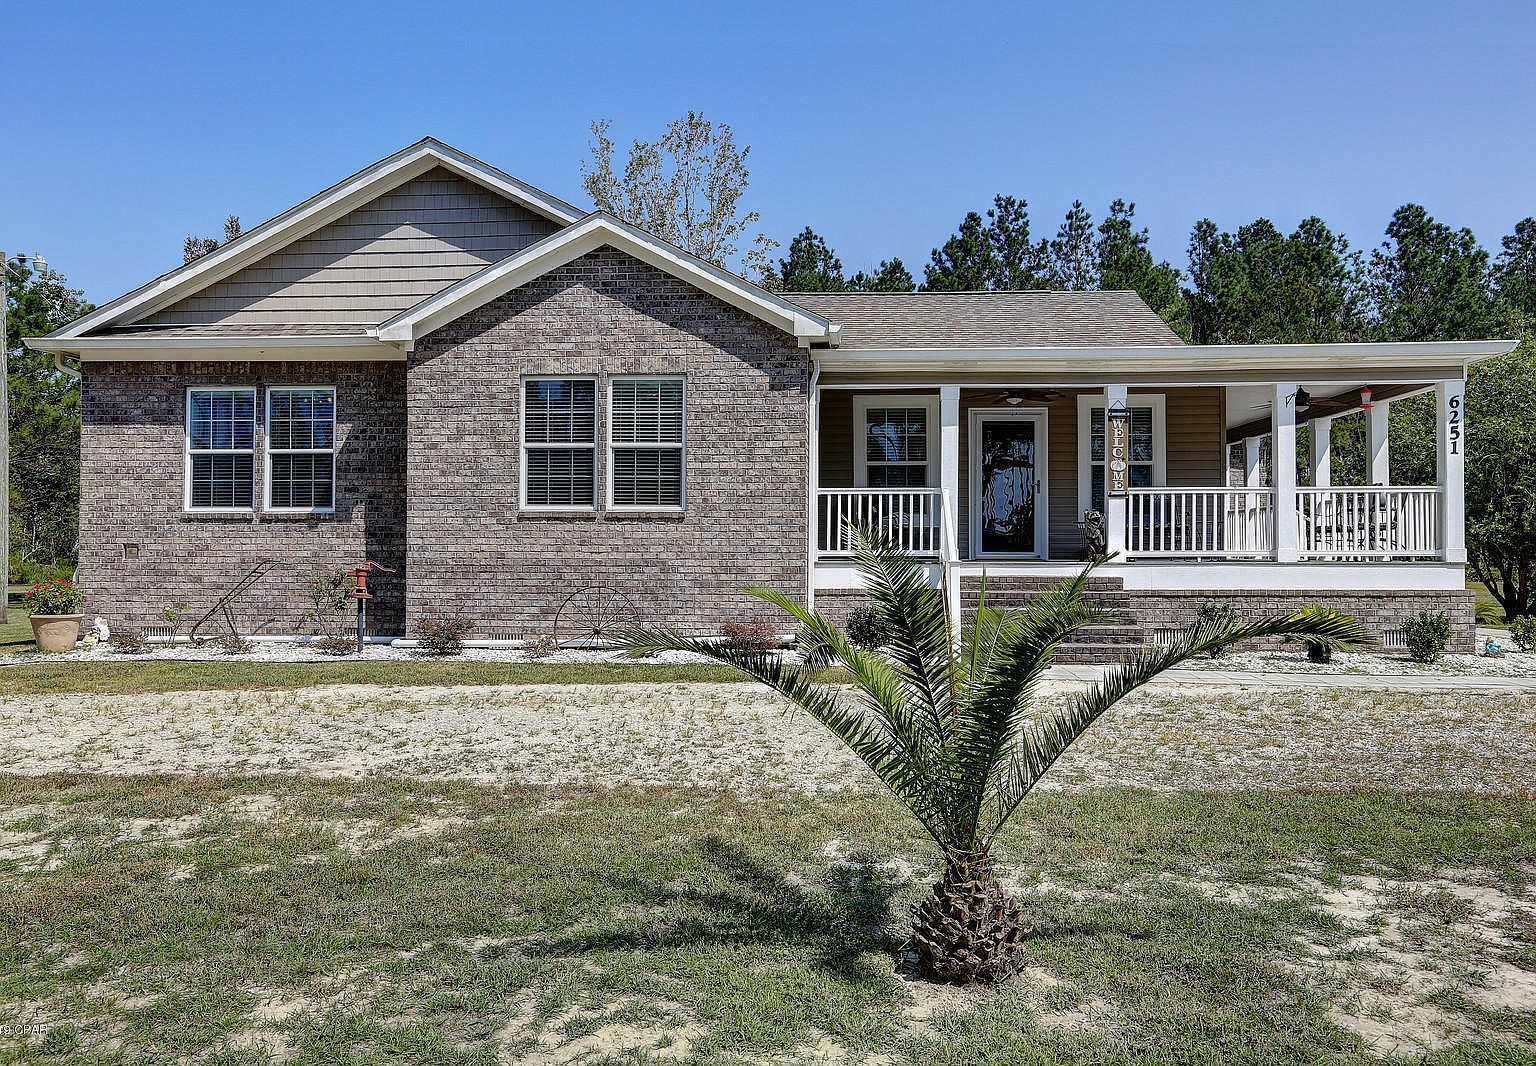 6251 Doc Whitfield Rd Wewahitchka Fl 32465 Zillow